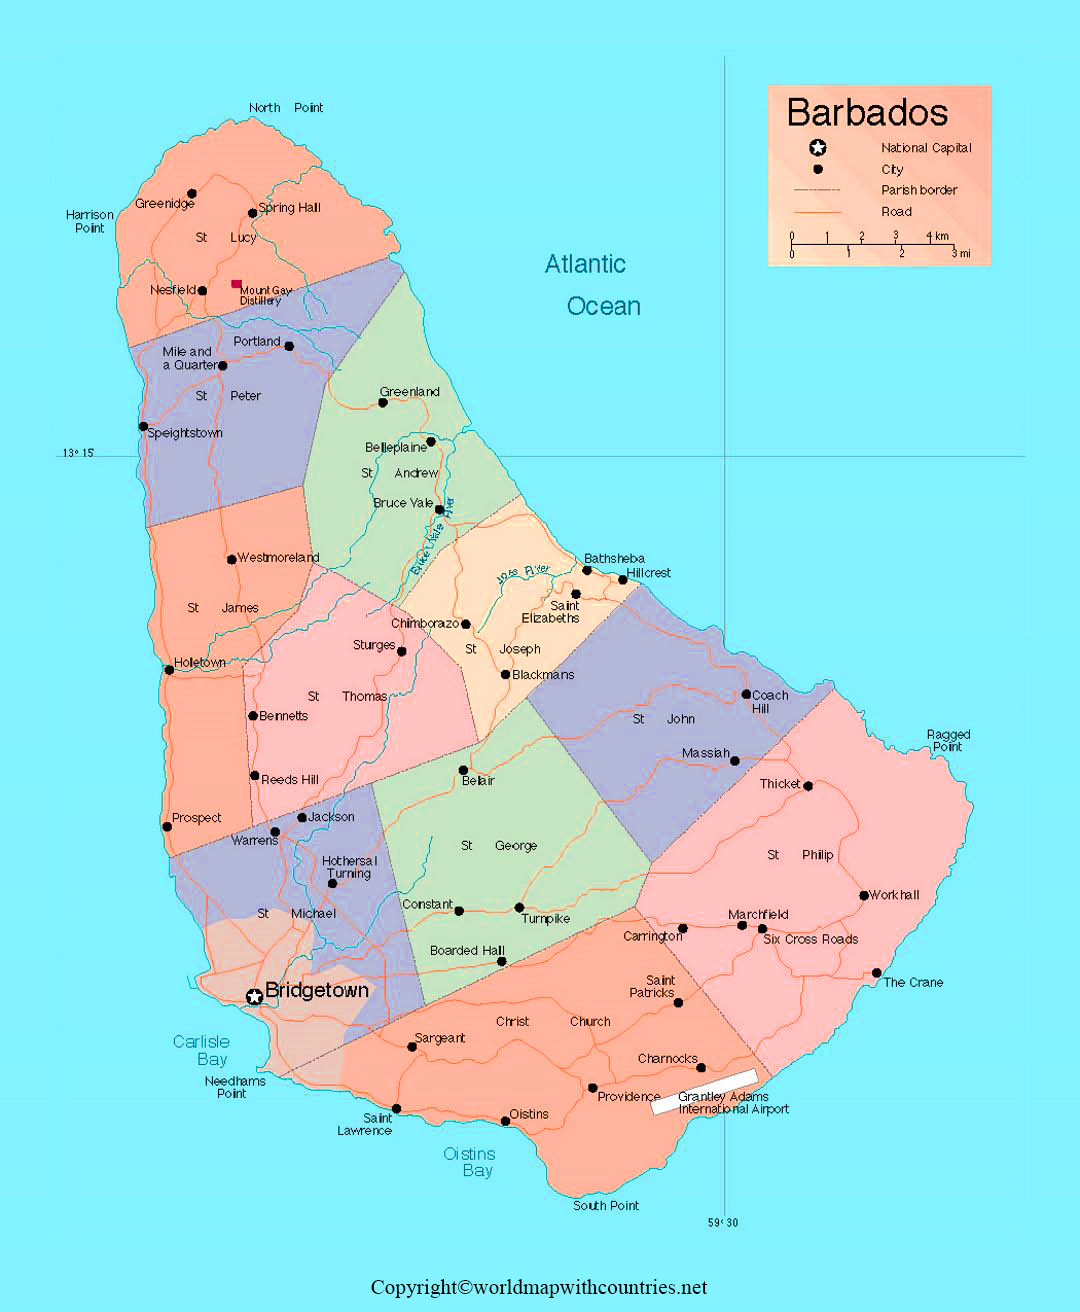 Barbados Map with States